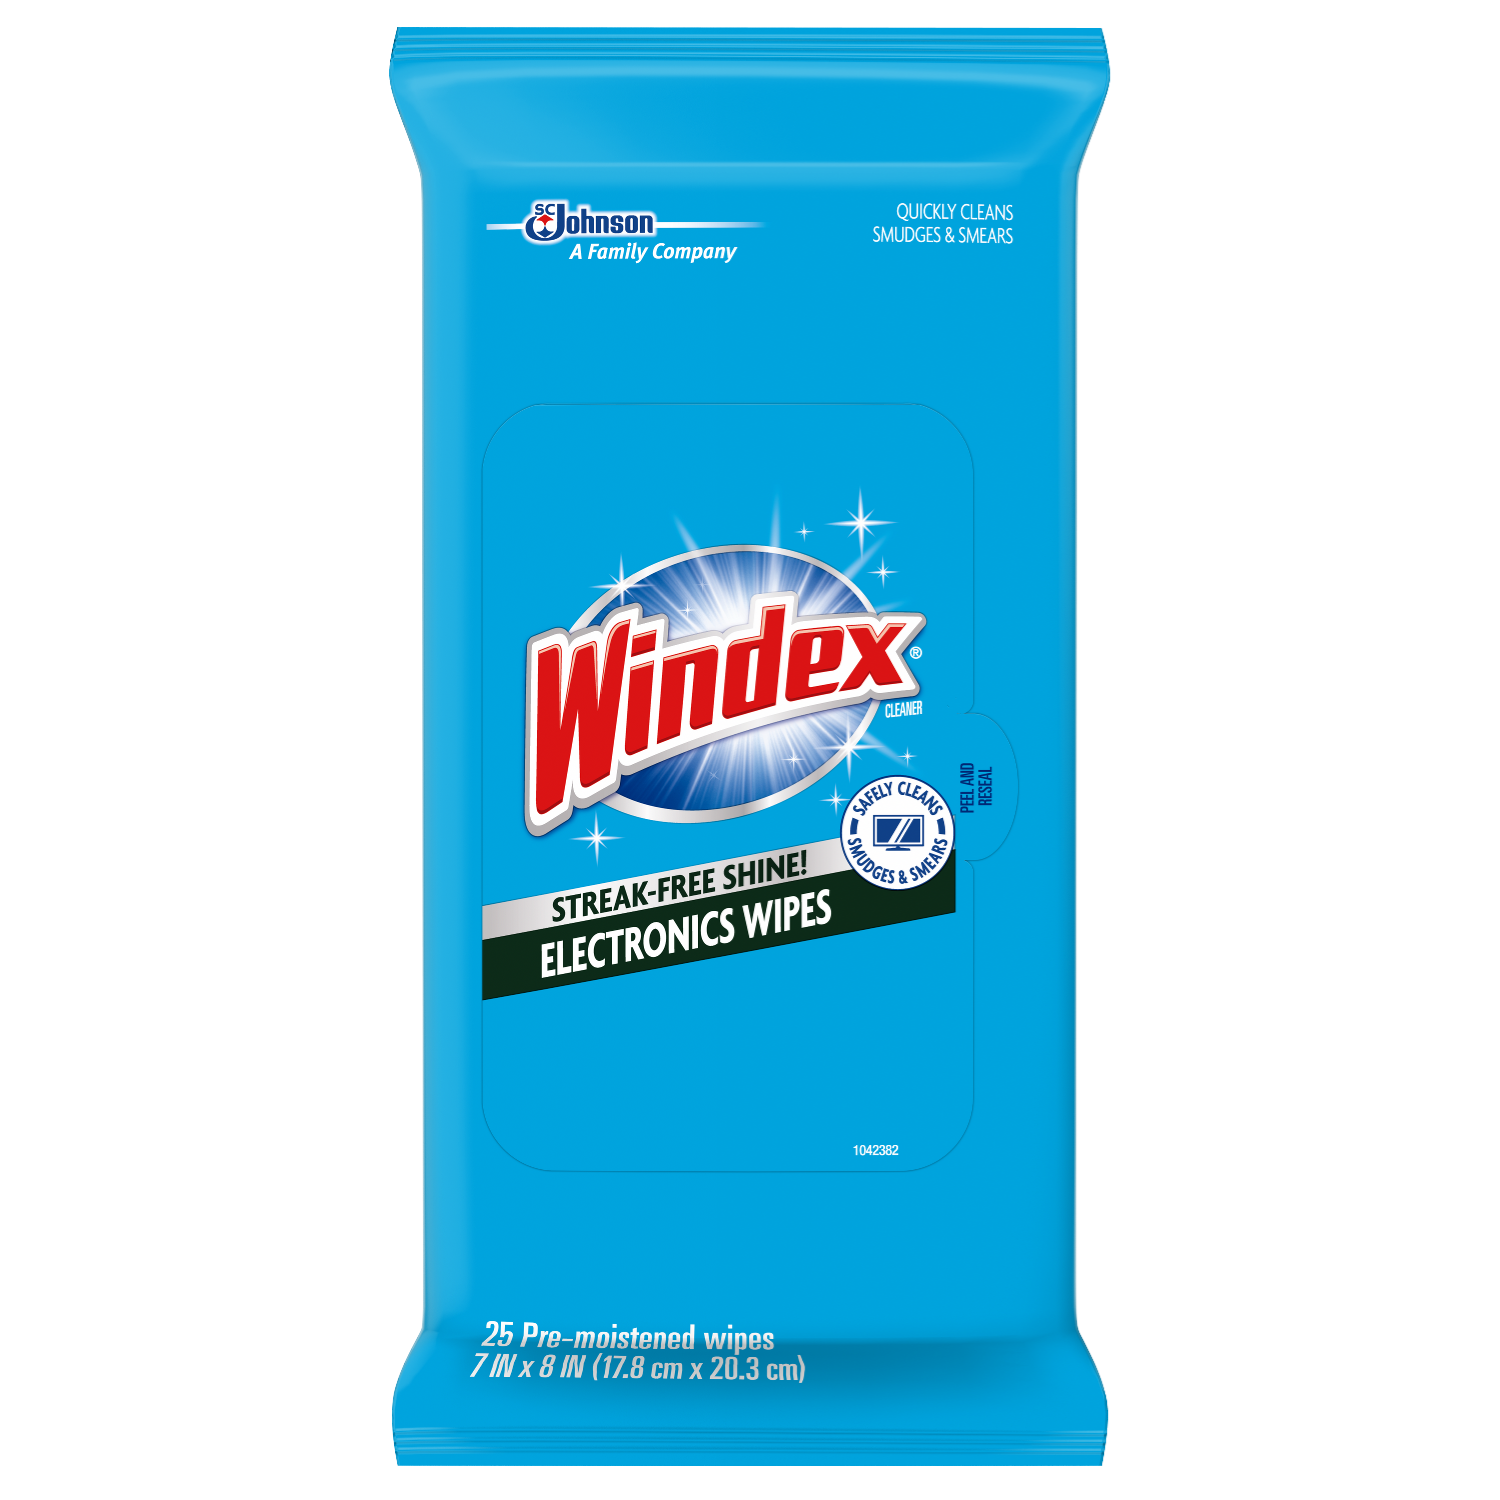 Windex Electonic Wipes